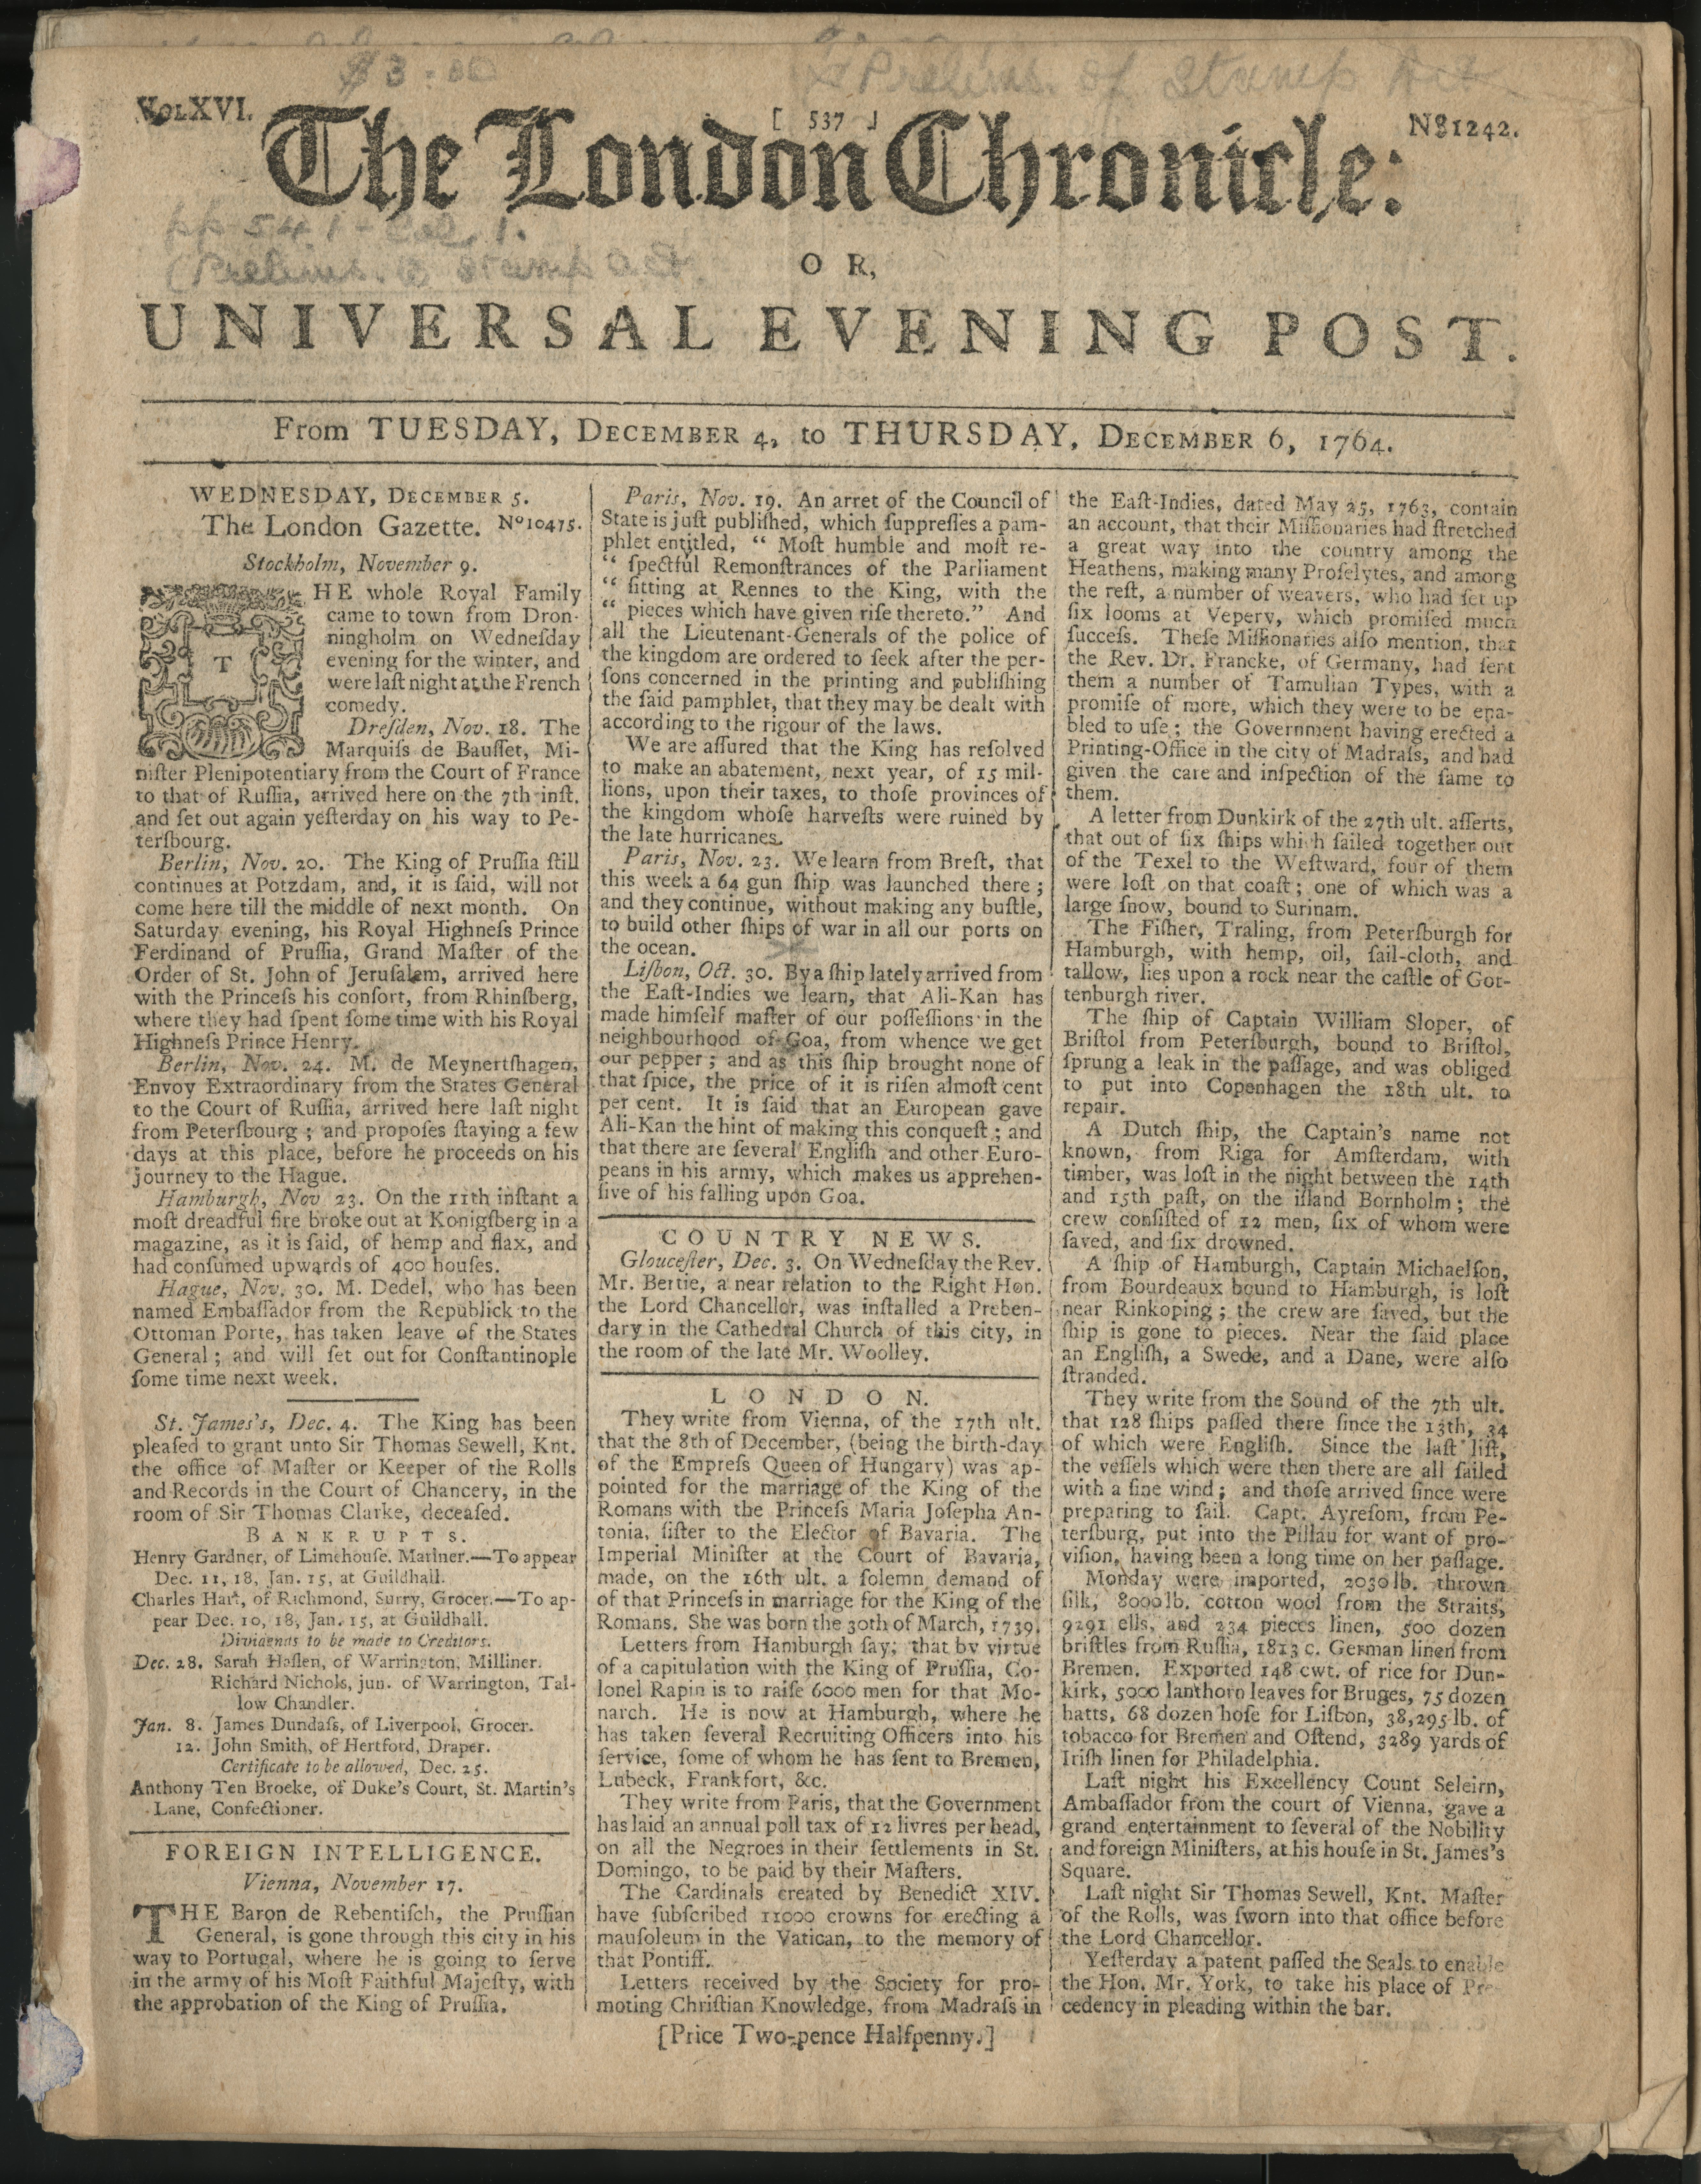 The London Chronicle, December 4 - 6, 1764